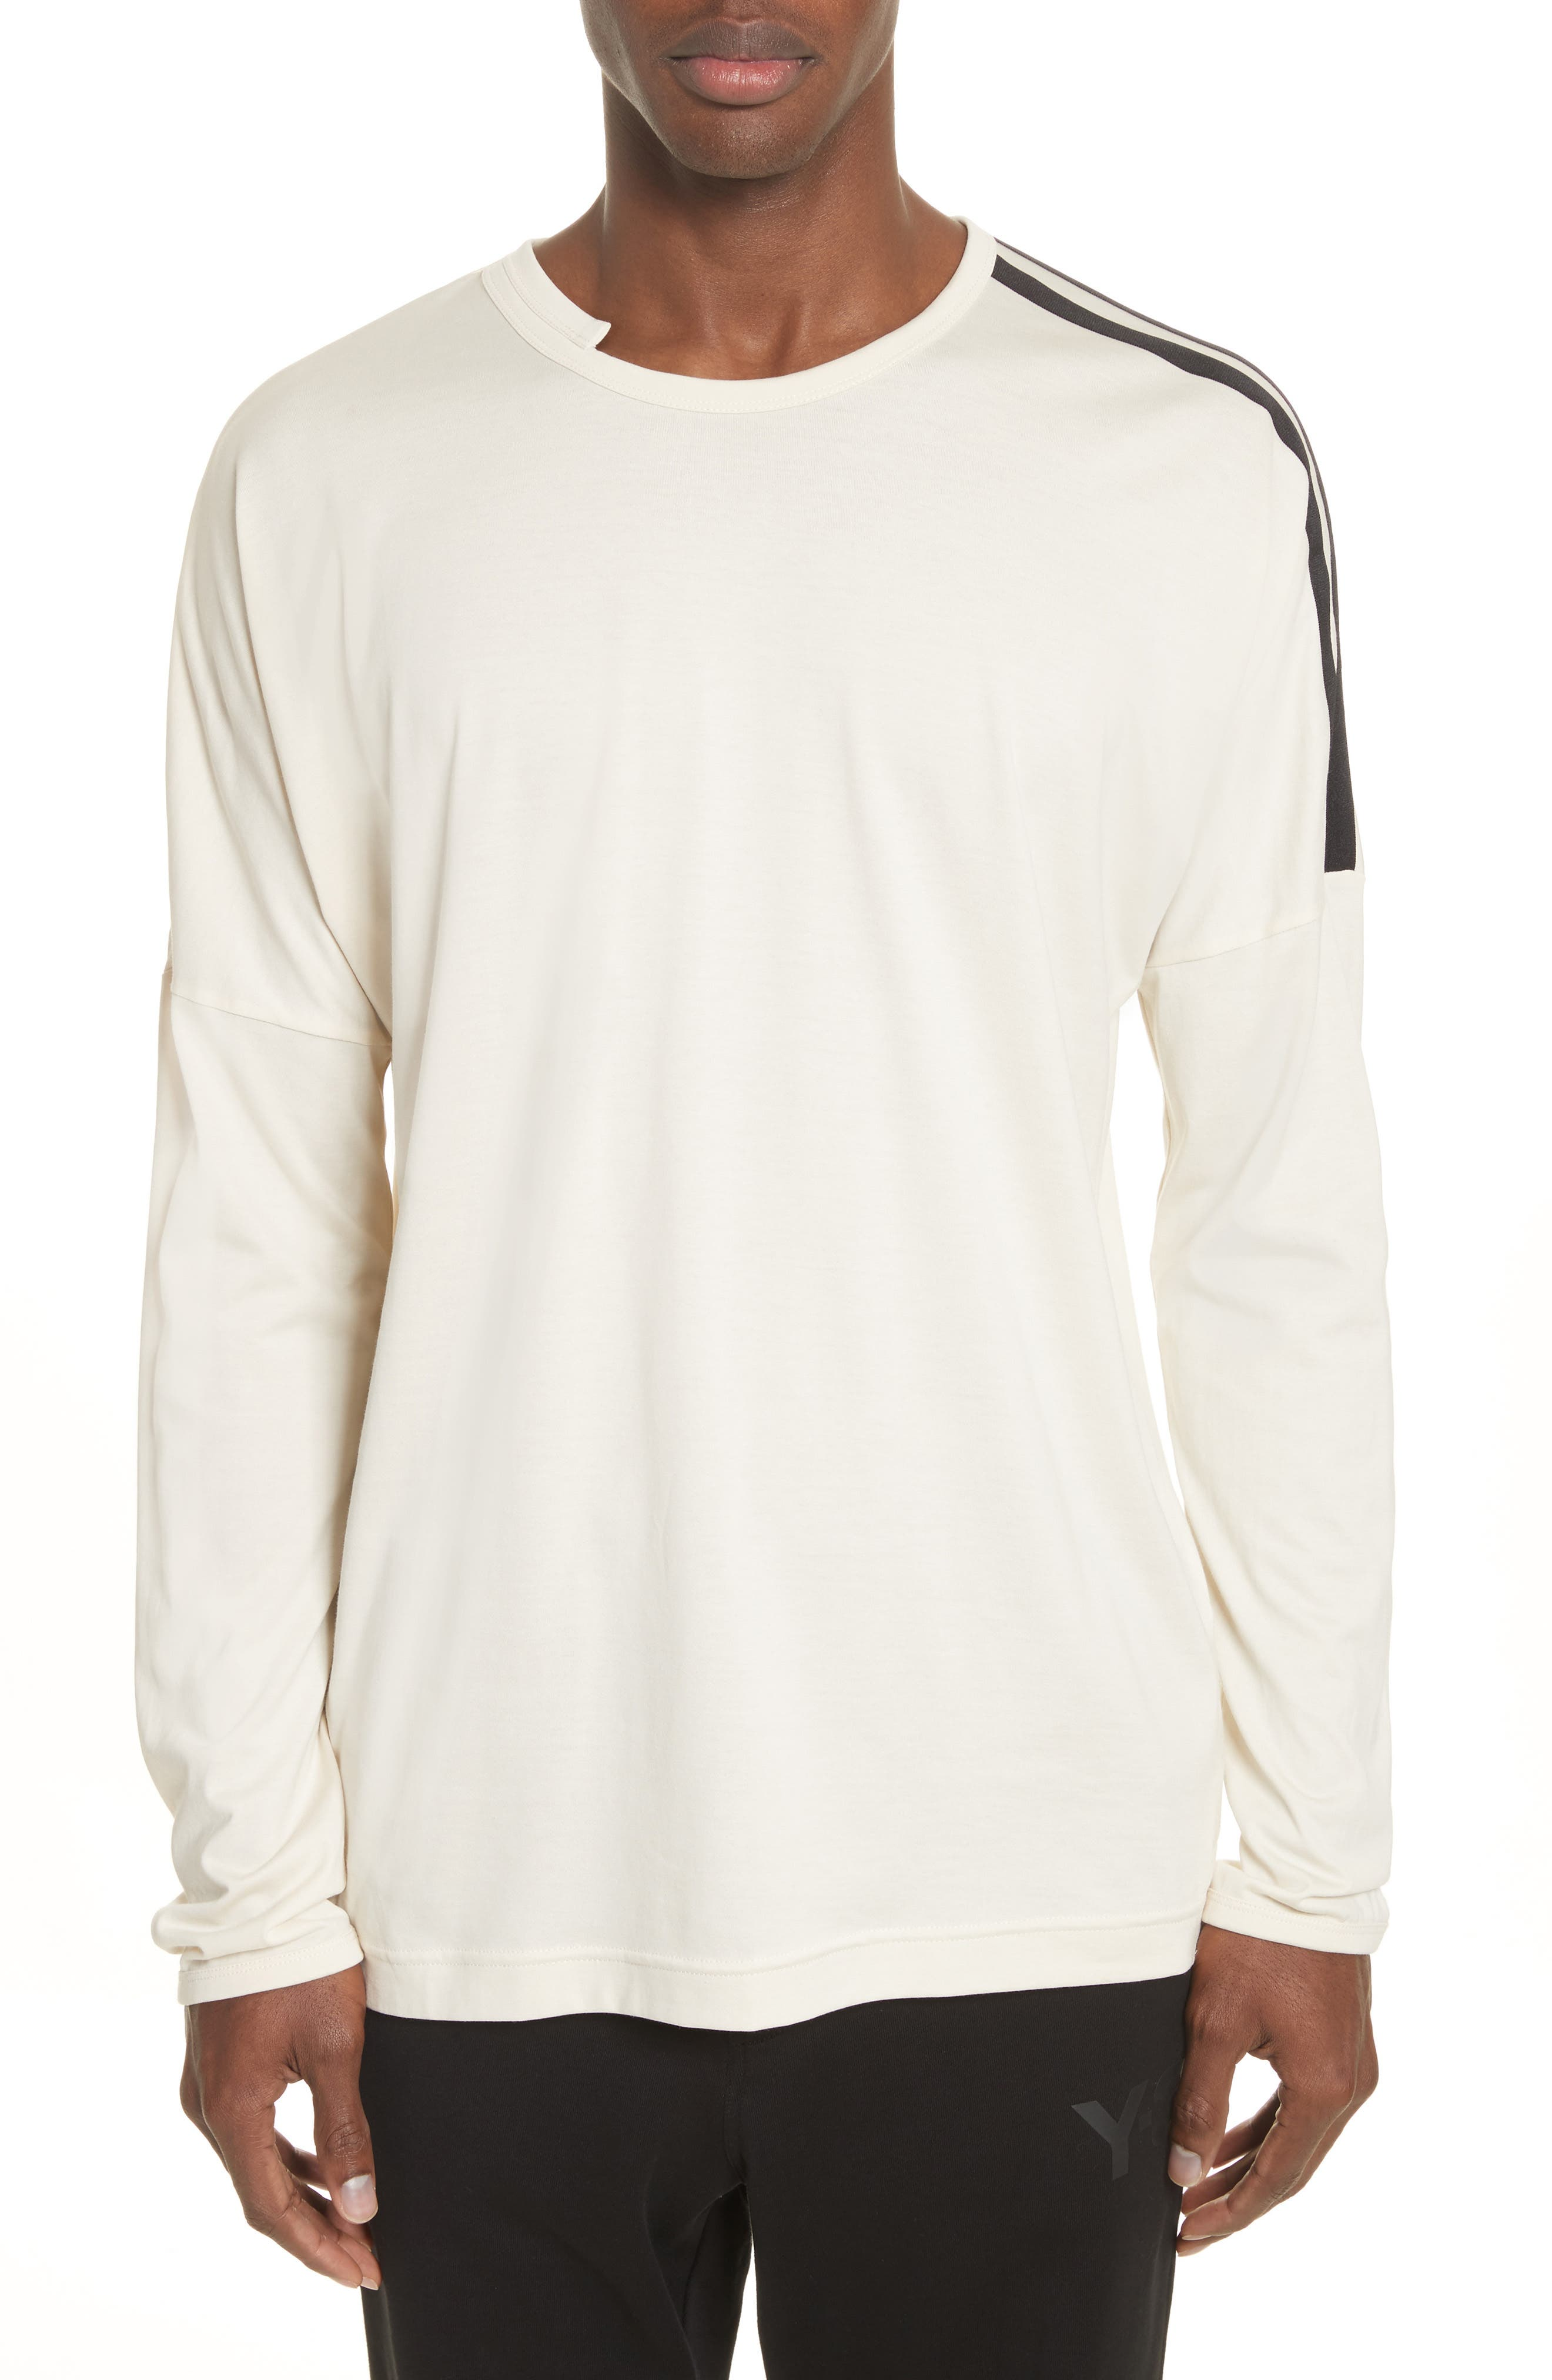 Alternate Image 1 Selected - Y-3 x adidas Long Sleeve Crewneck T-Shirt